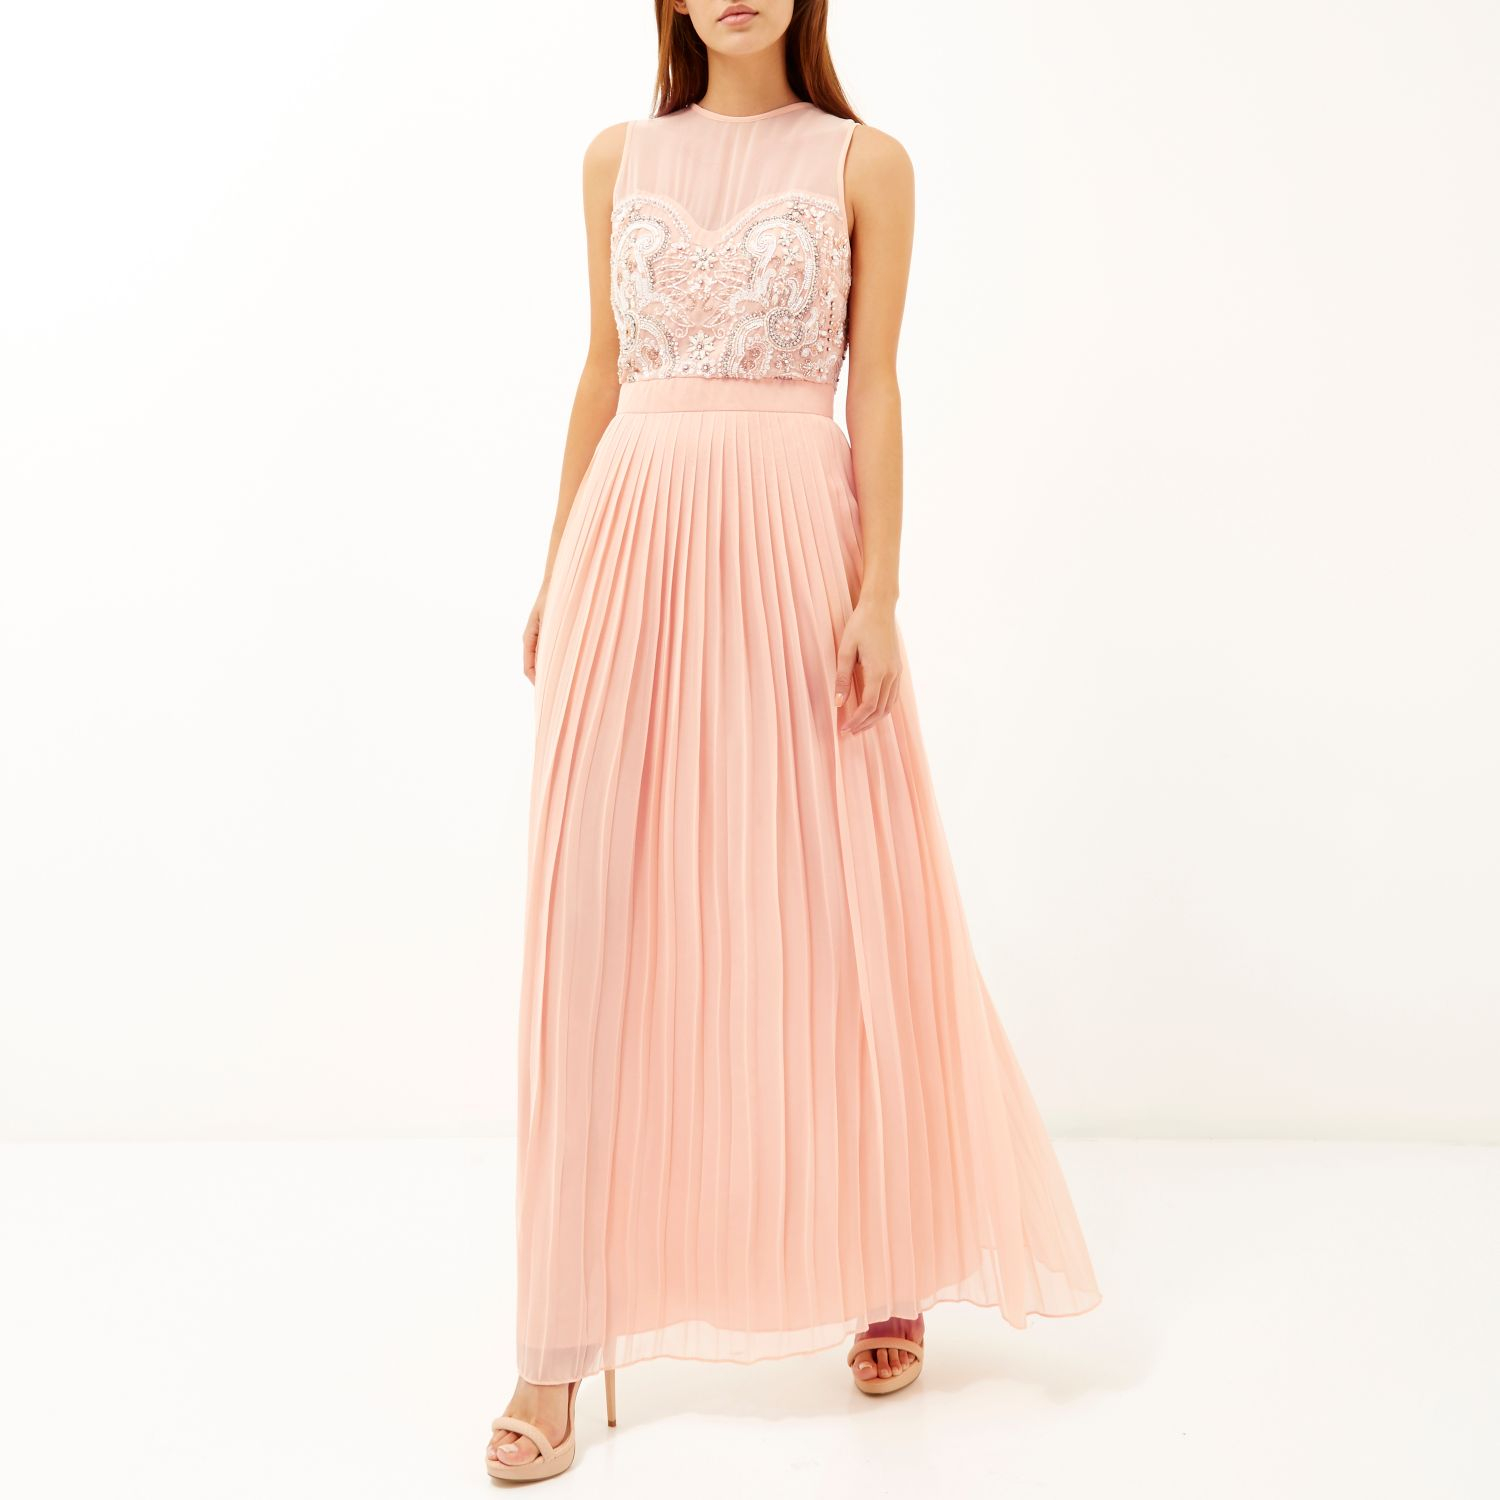 11cdd1f690 River Island Pink Sequin Embellished Maxi Prom Dress in Pink - Lyst